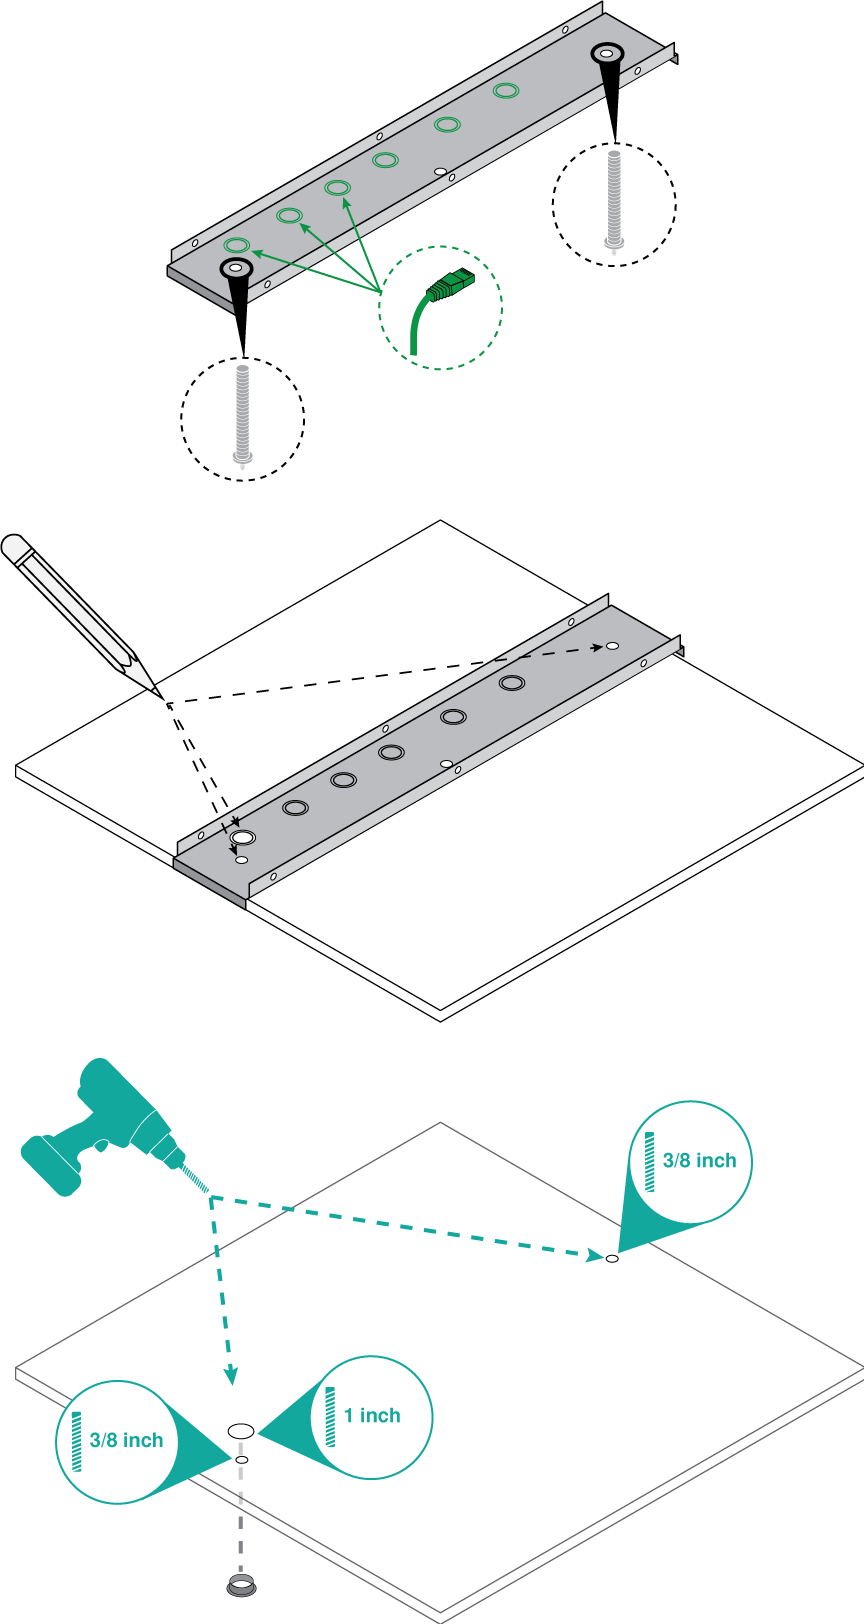 Illustration showing how to place the A710-TB on a ceiling tile and drill holes for the mounting bolts and Ethernet cable.